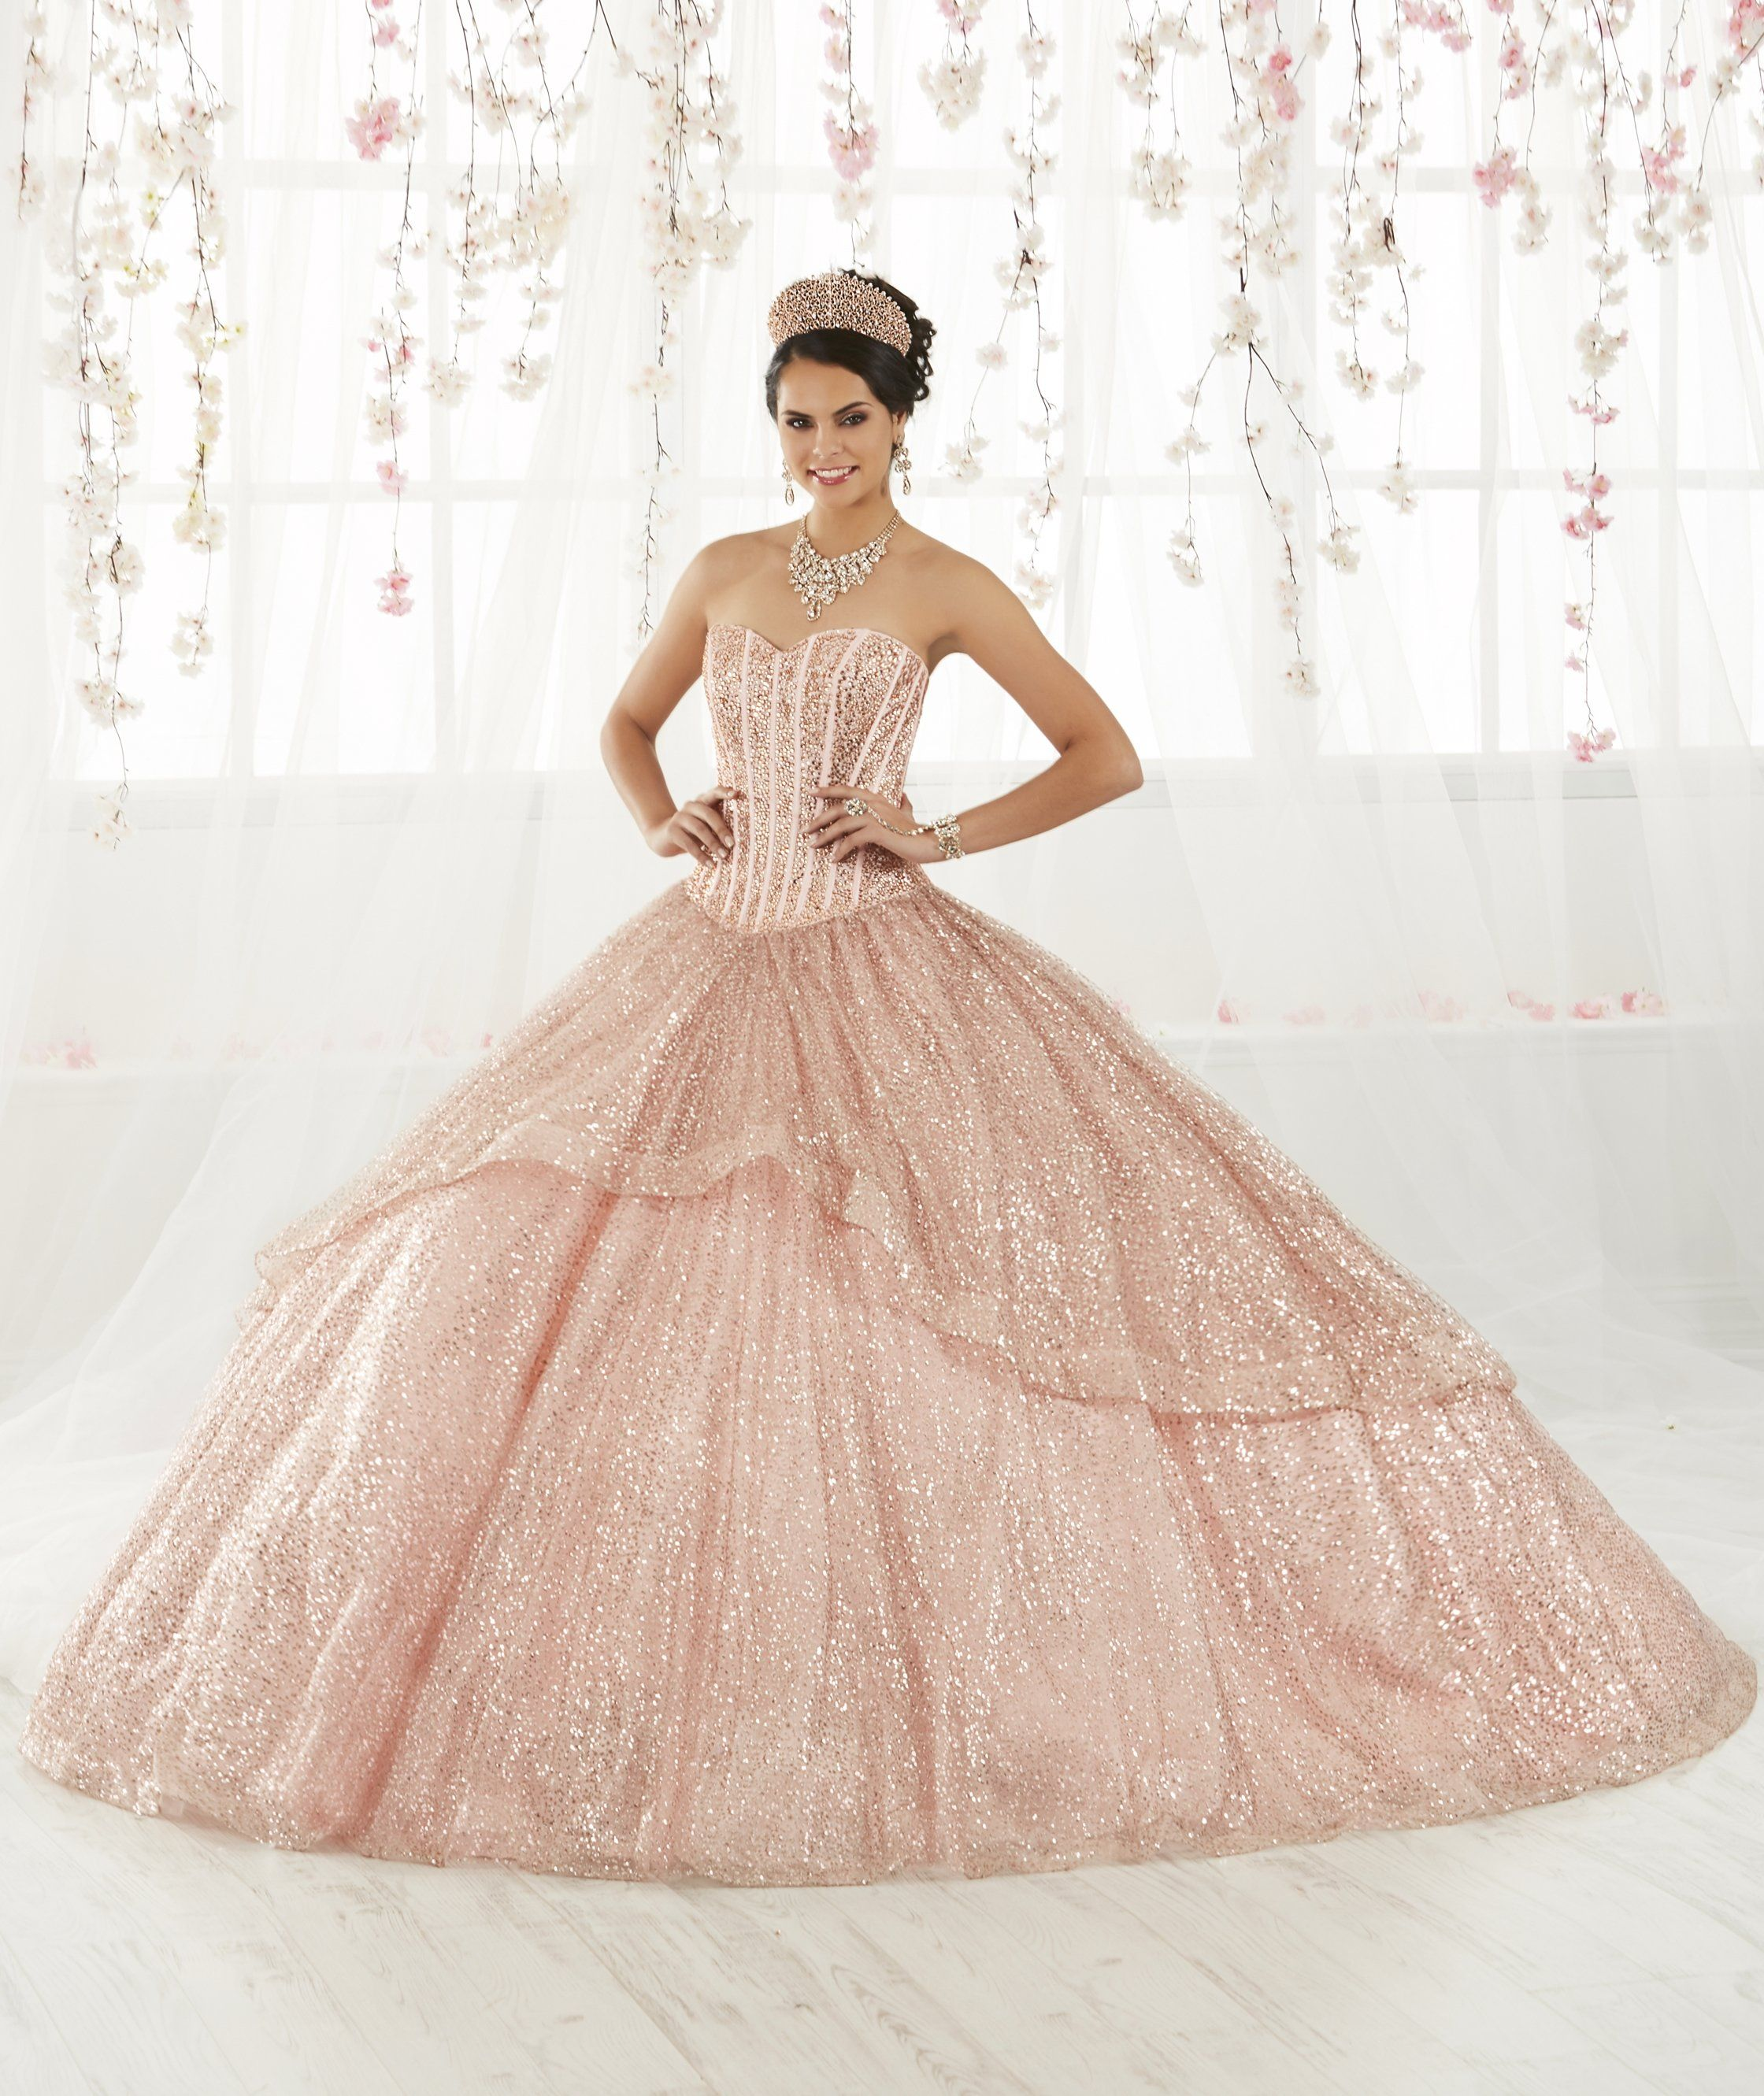 d84f8b5f970 Strapless Glitter Quinceanera Dress by House of Wu 26923 in 2019 ...